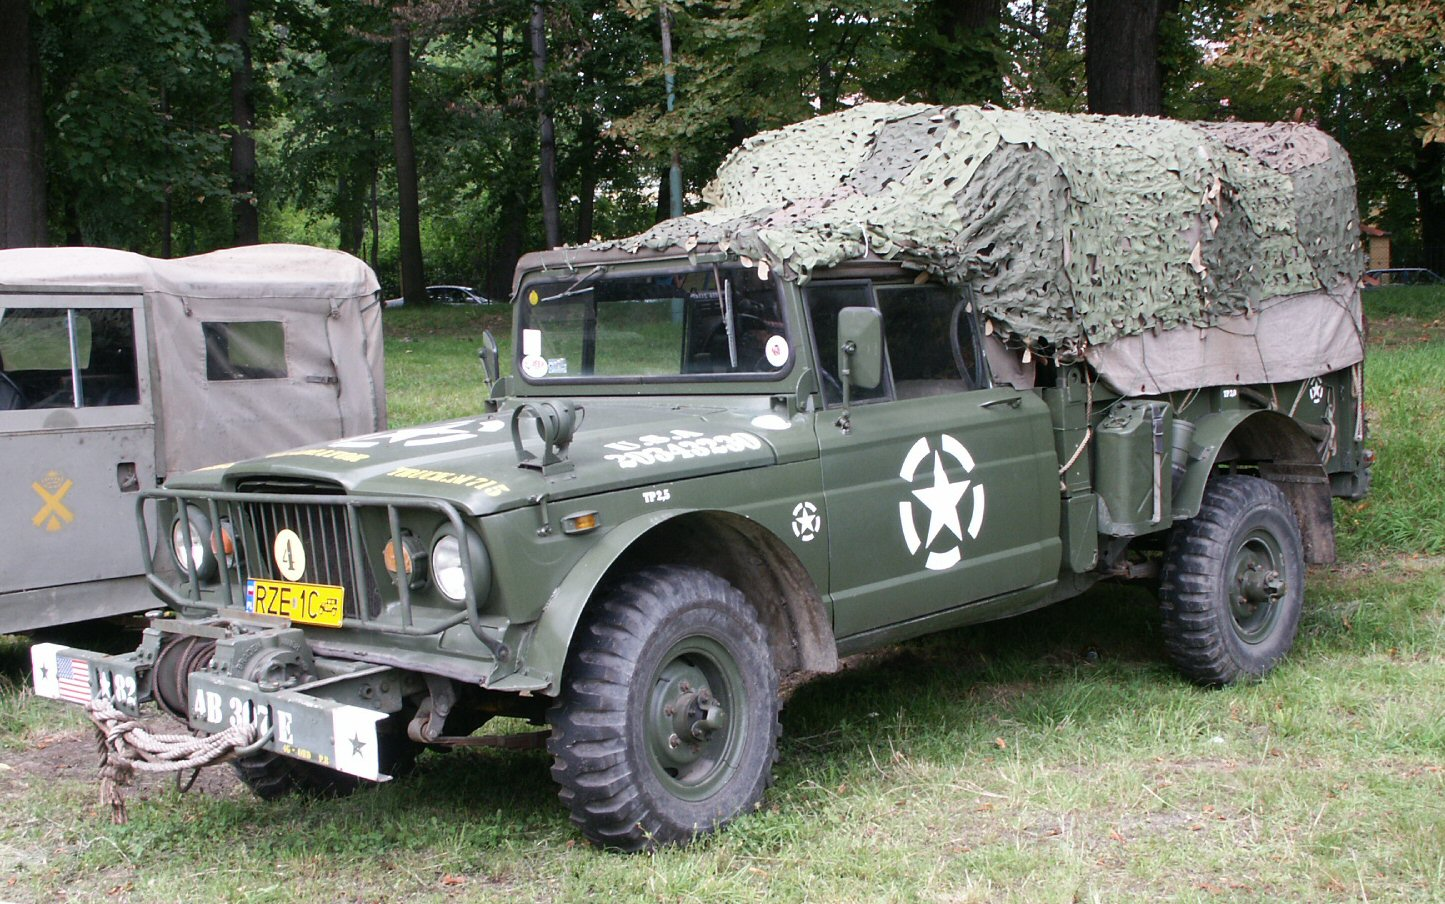 Jeeps For Sale Craigslist >> Kaiser Jeep M715 | Military Wiki | FANDOM powered by Wikia